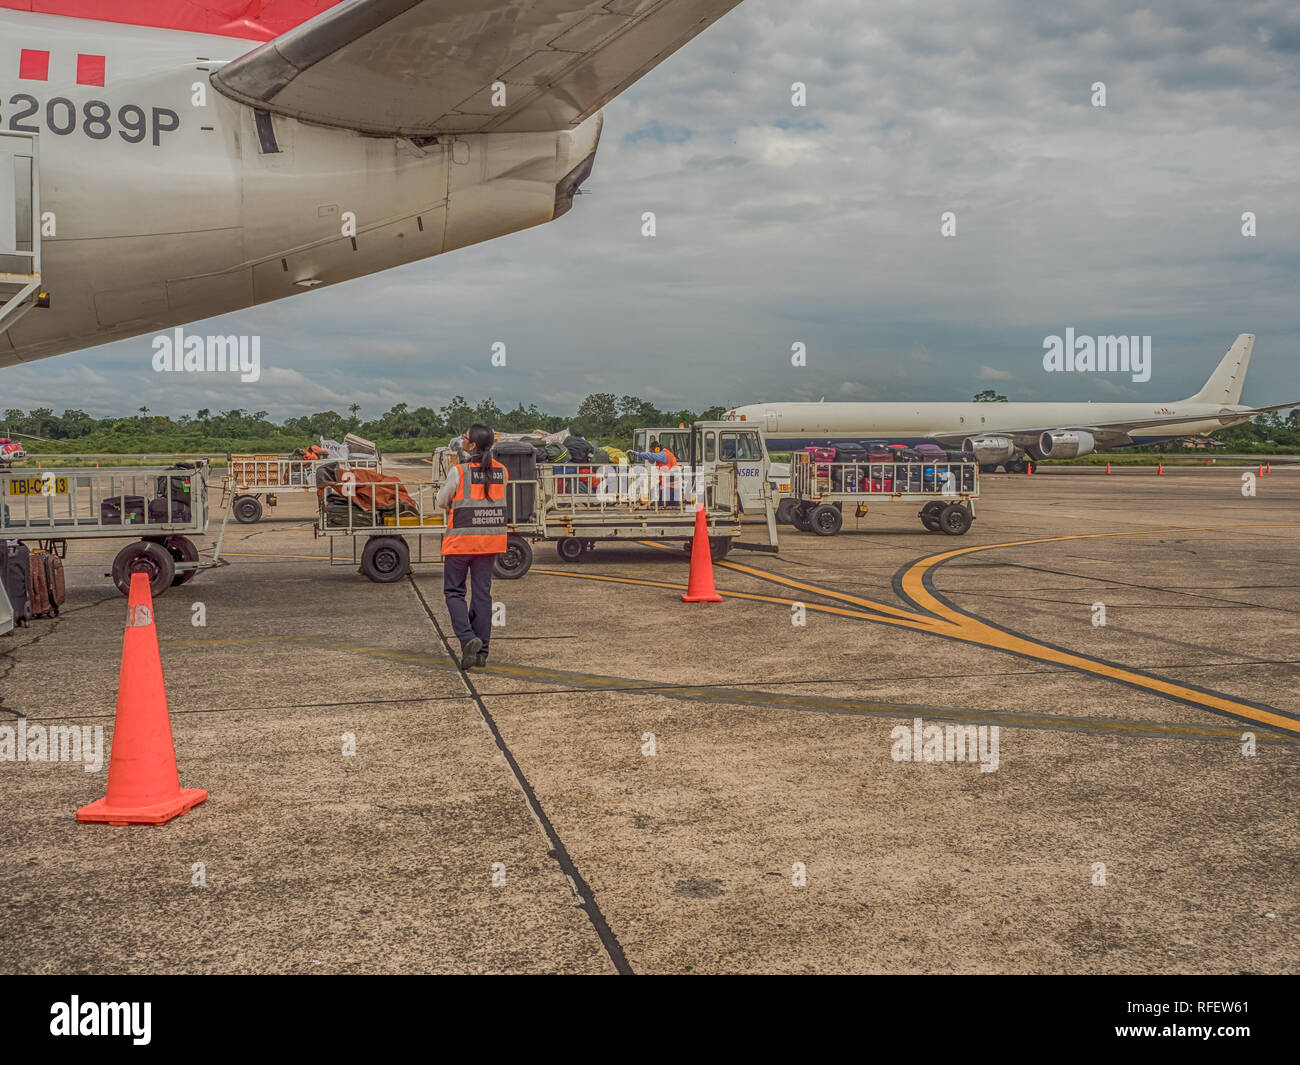 Iquitos, Peru - December 07, 2018: Luggage is waiting to be loaded onto an airplane at Iquitos airport. South America, Latin America - Stock Image